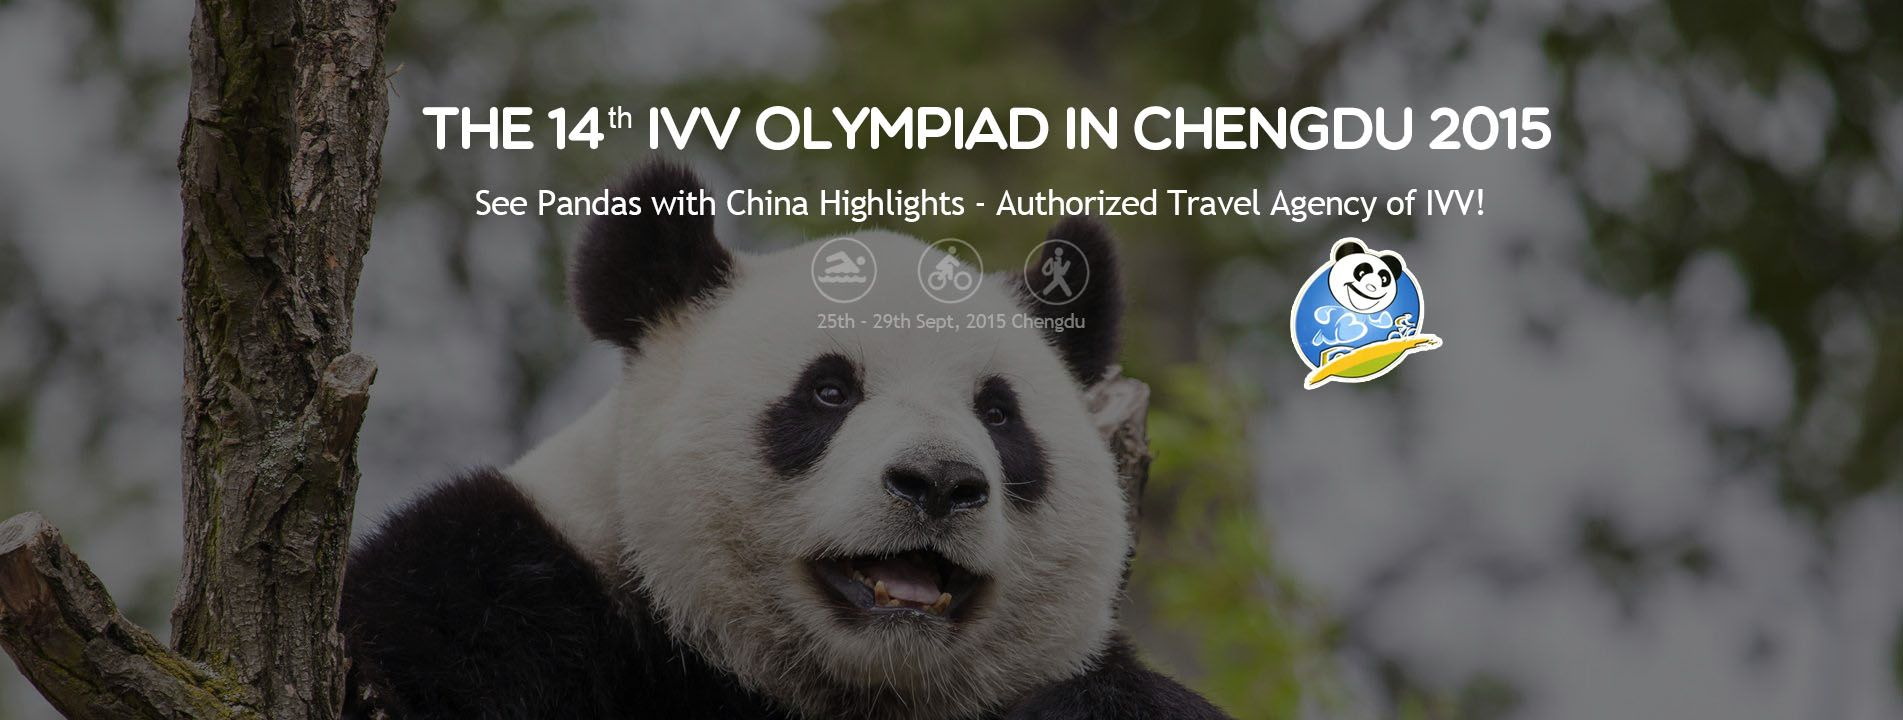 The 14th IVV Olympiad in Chengdu 2015